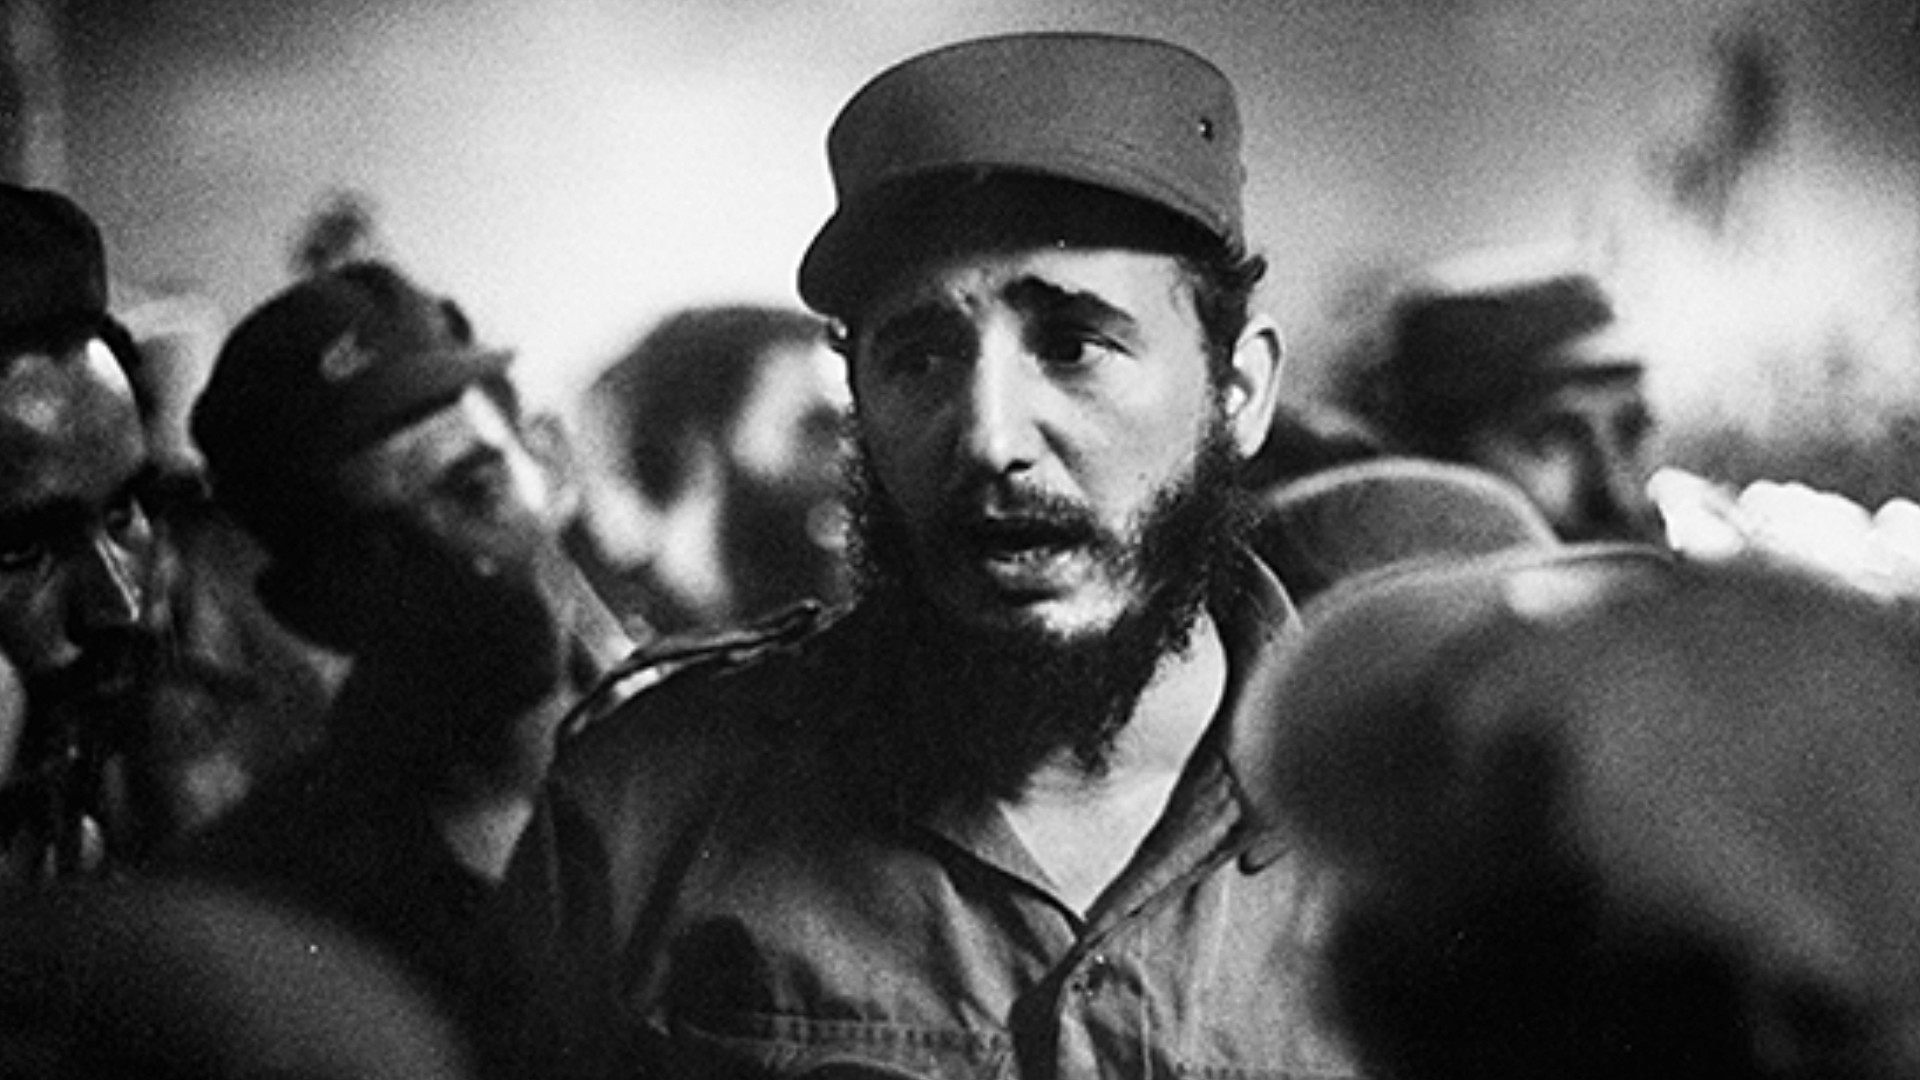 fidel castro early life Early life edit raúl modesto castro and commander-in-chief of the armed forces to raúl castro while fidel underwent and recovered from intestinal surgery to.